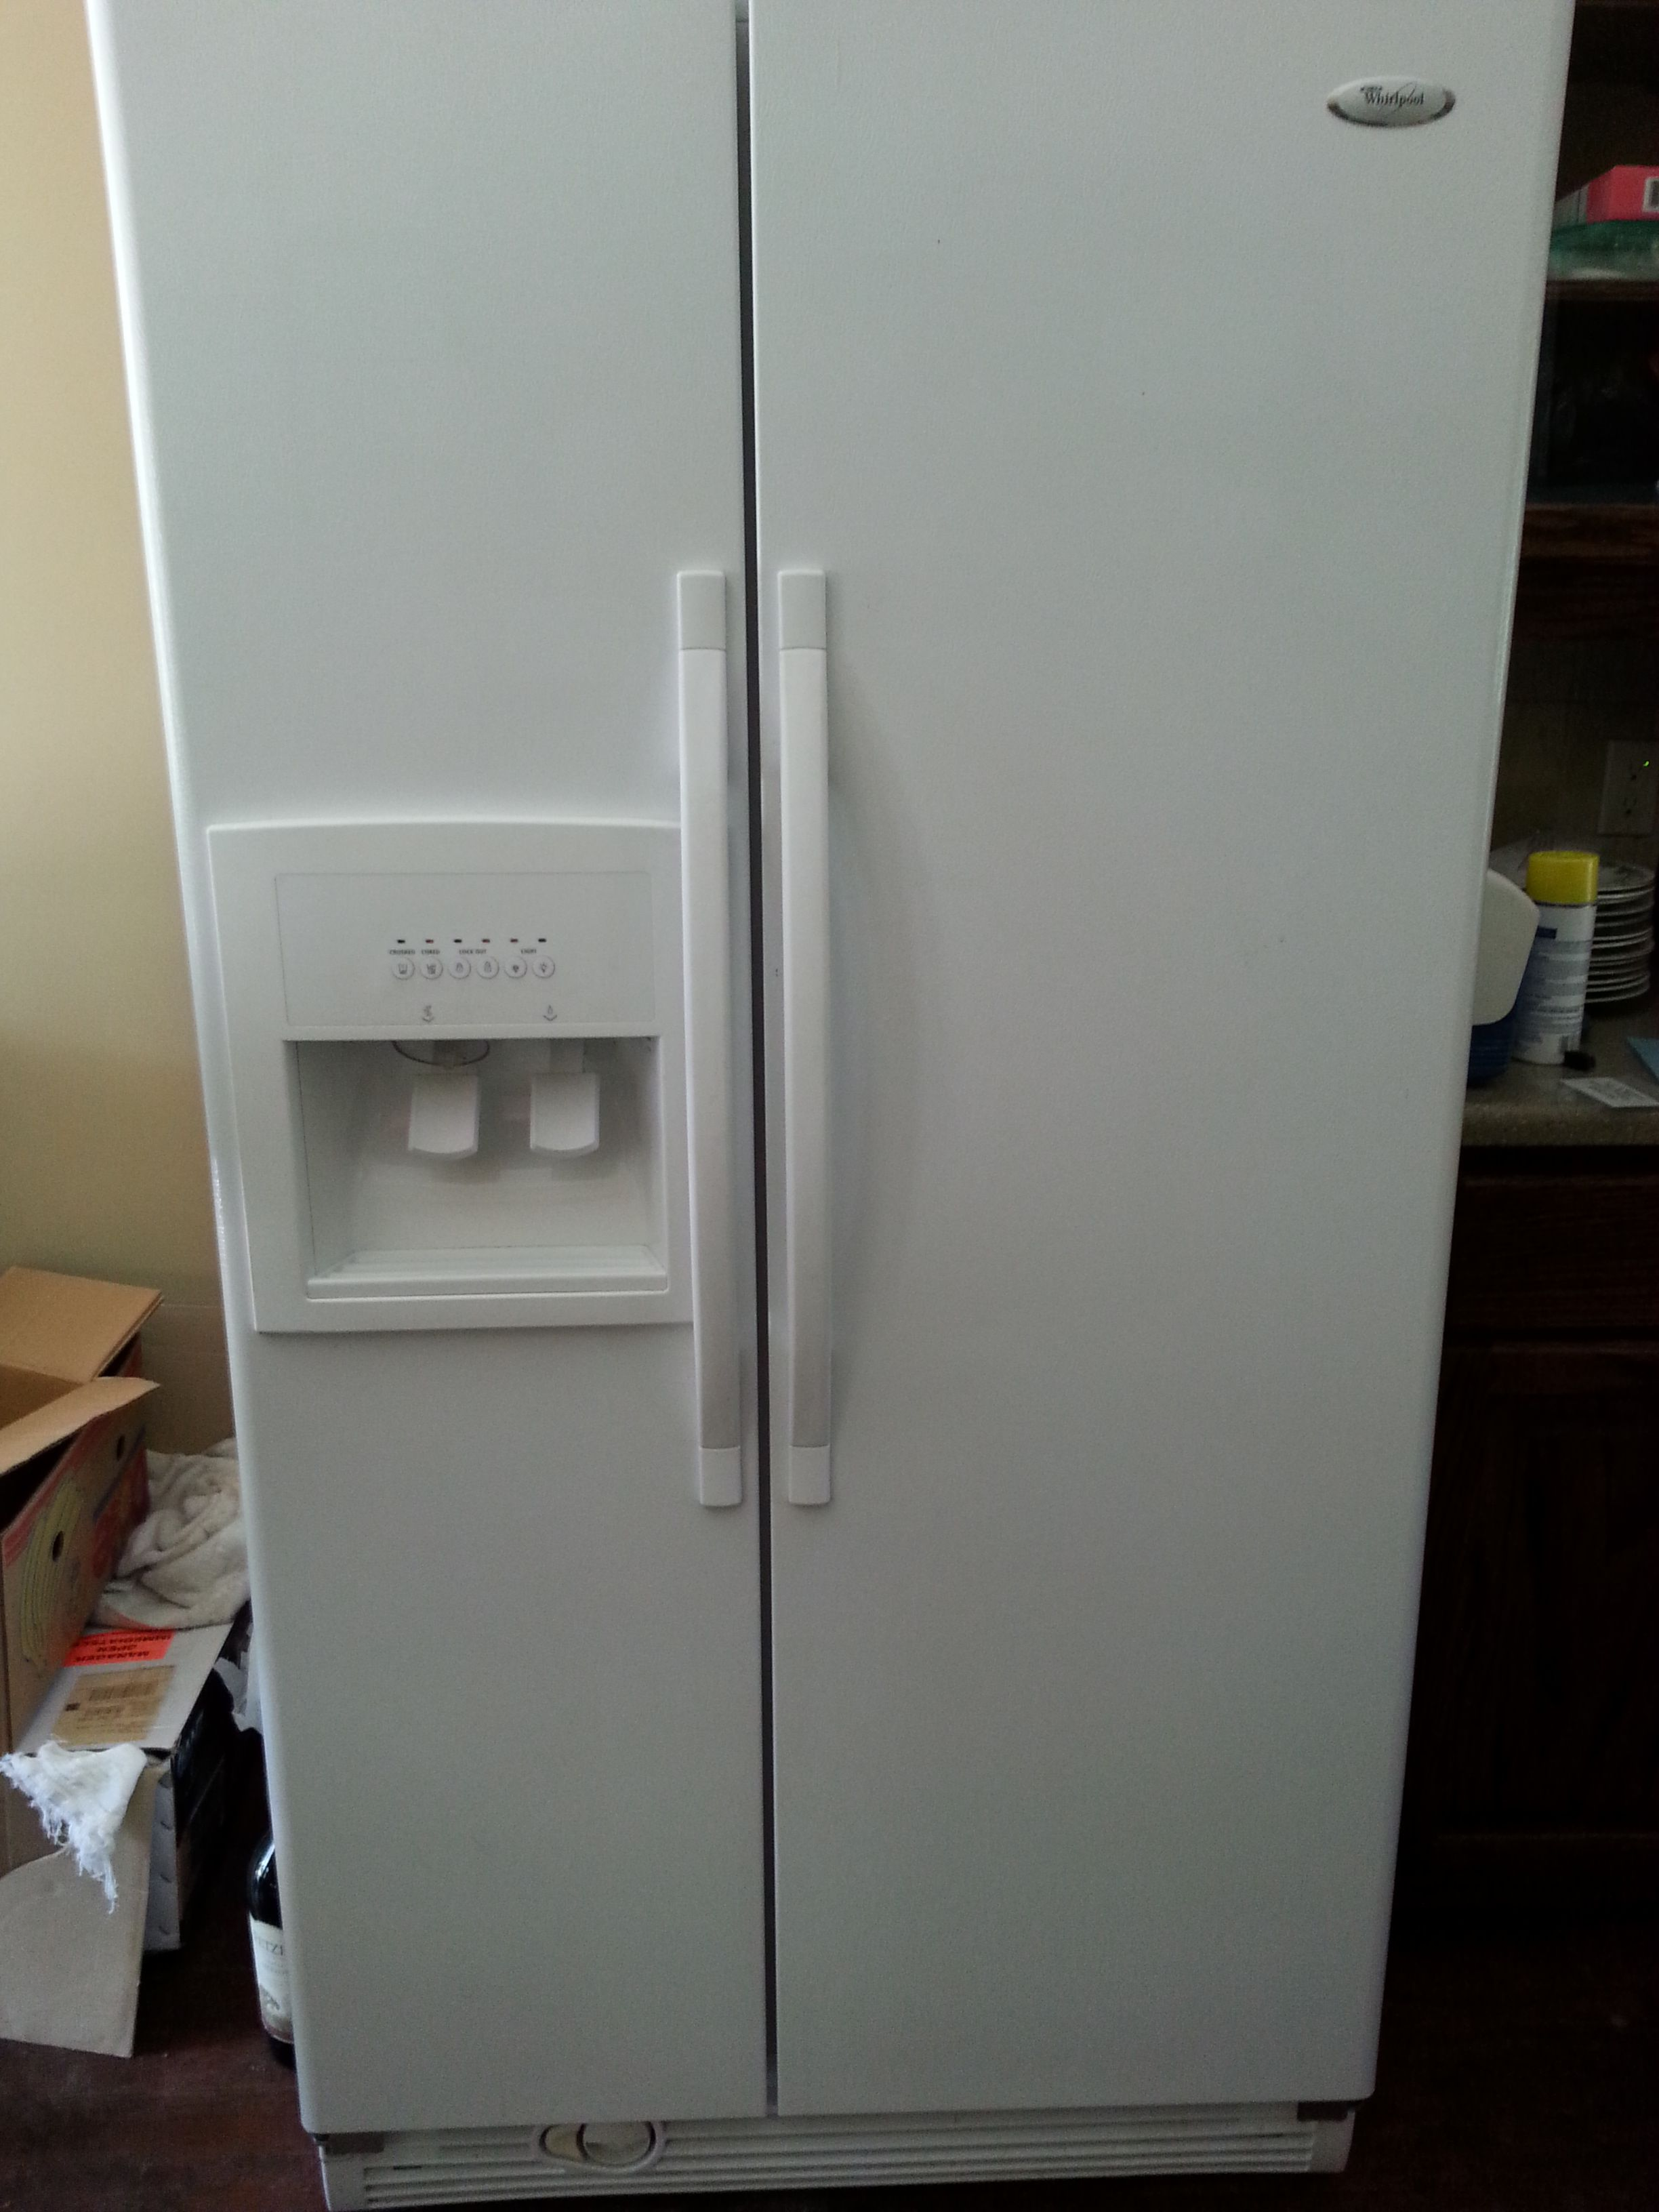 new refrigerator freezer for garage. Black Bedroom Furniture Sets. Home Design Ideas